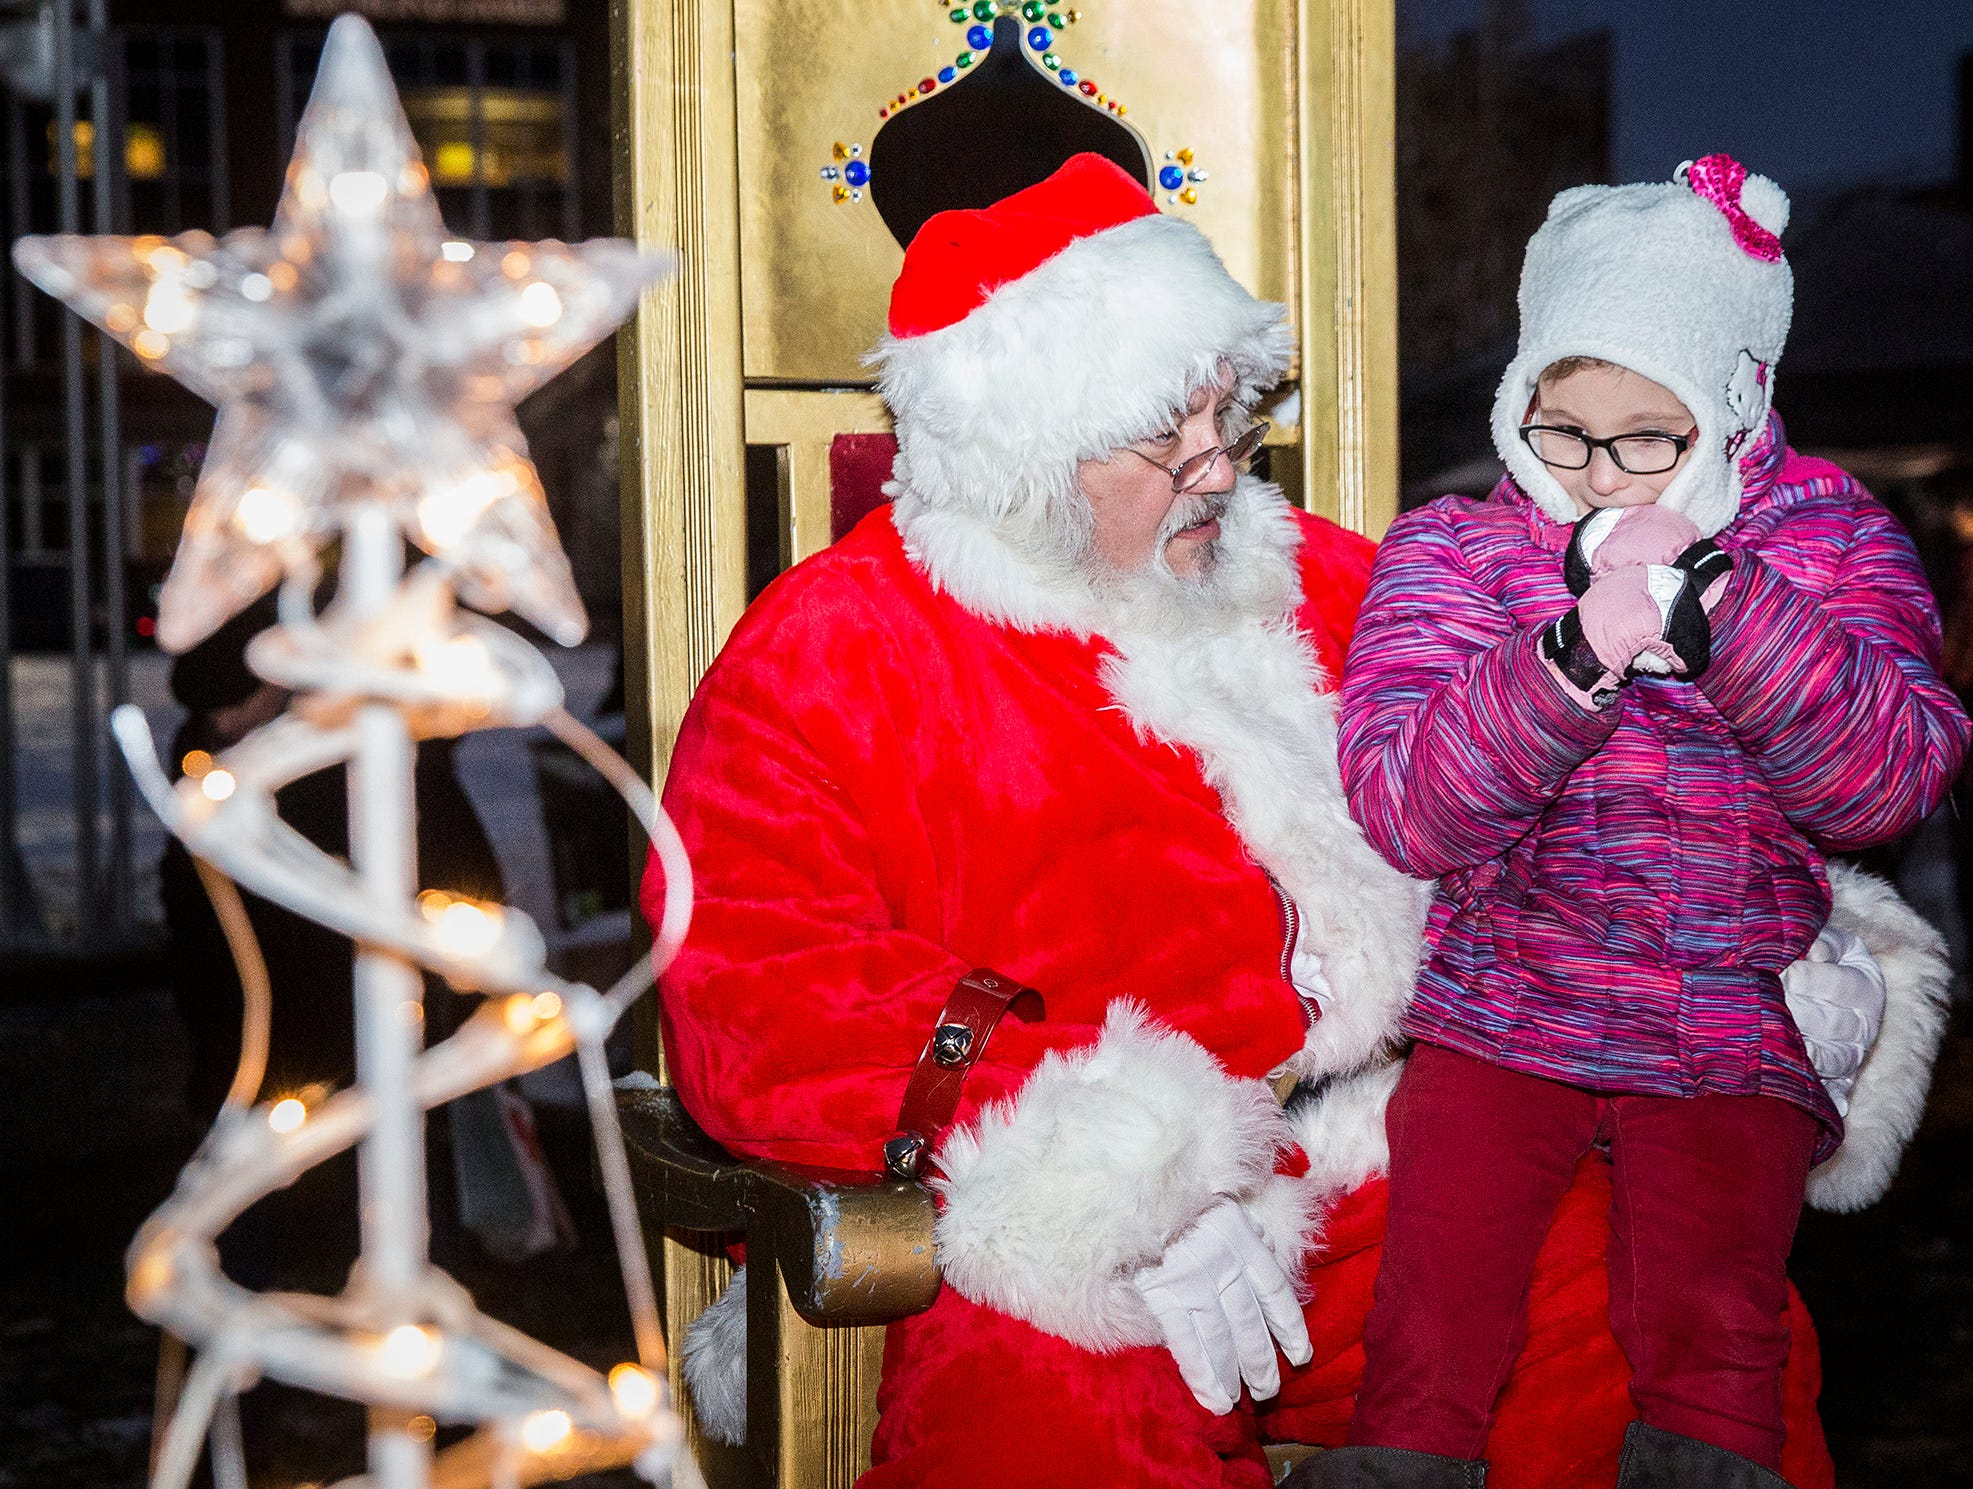 Attendees of Light Up DWNTWN watched a Christmas tree light show, performances by the Muncie Community School's Elementary Choir and Ball State's Code Red Dance team and browsed local vendors at the Muncie Makers Market at Canan Commons Thursday evening.